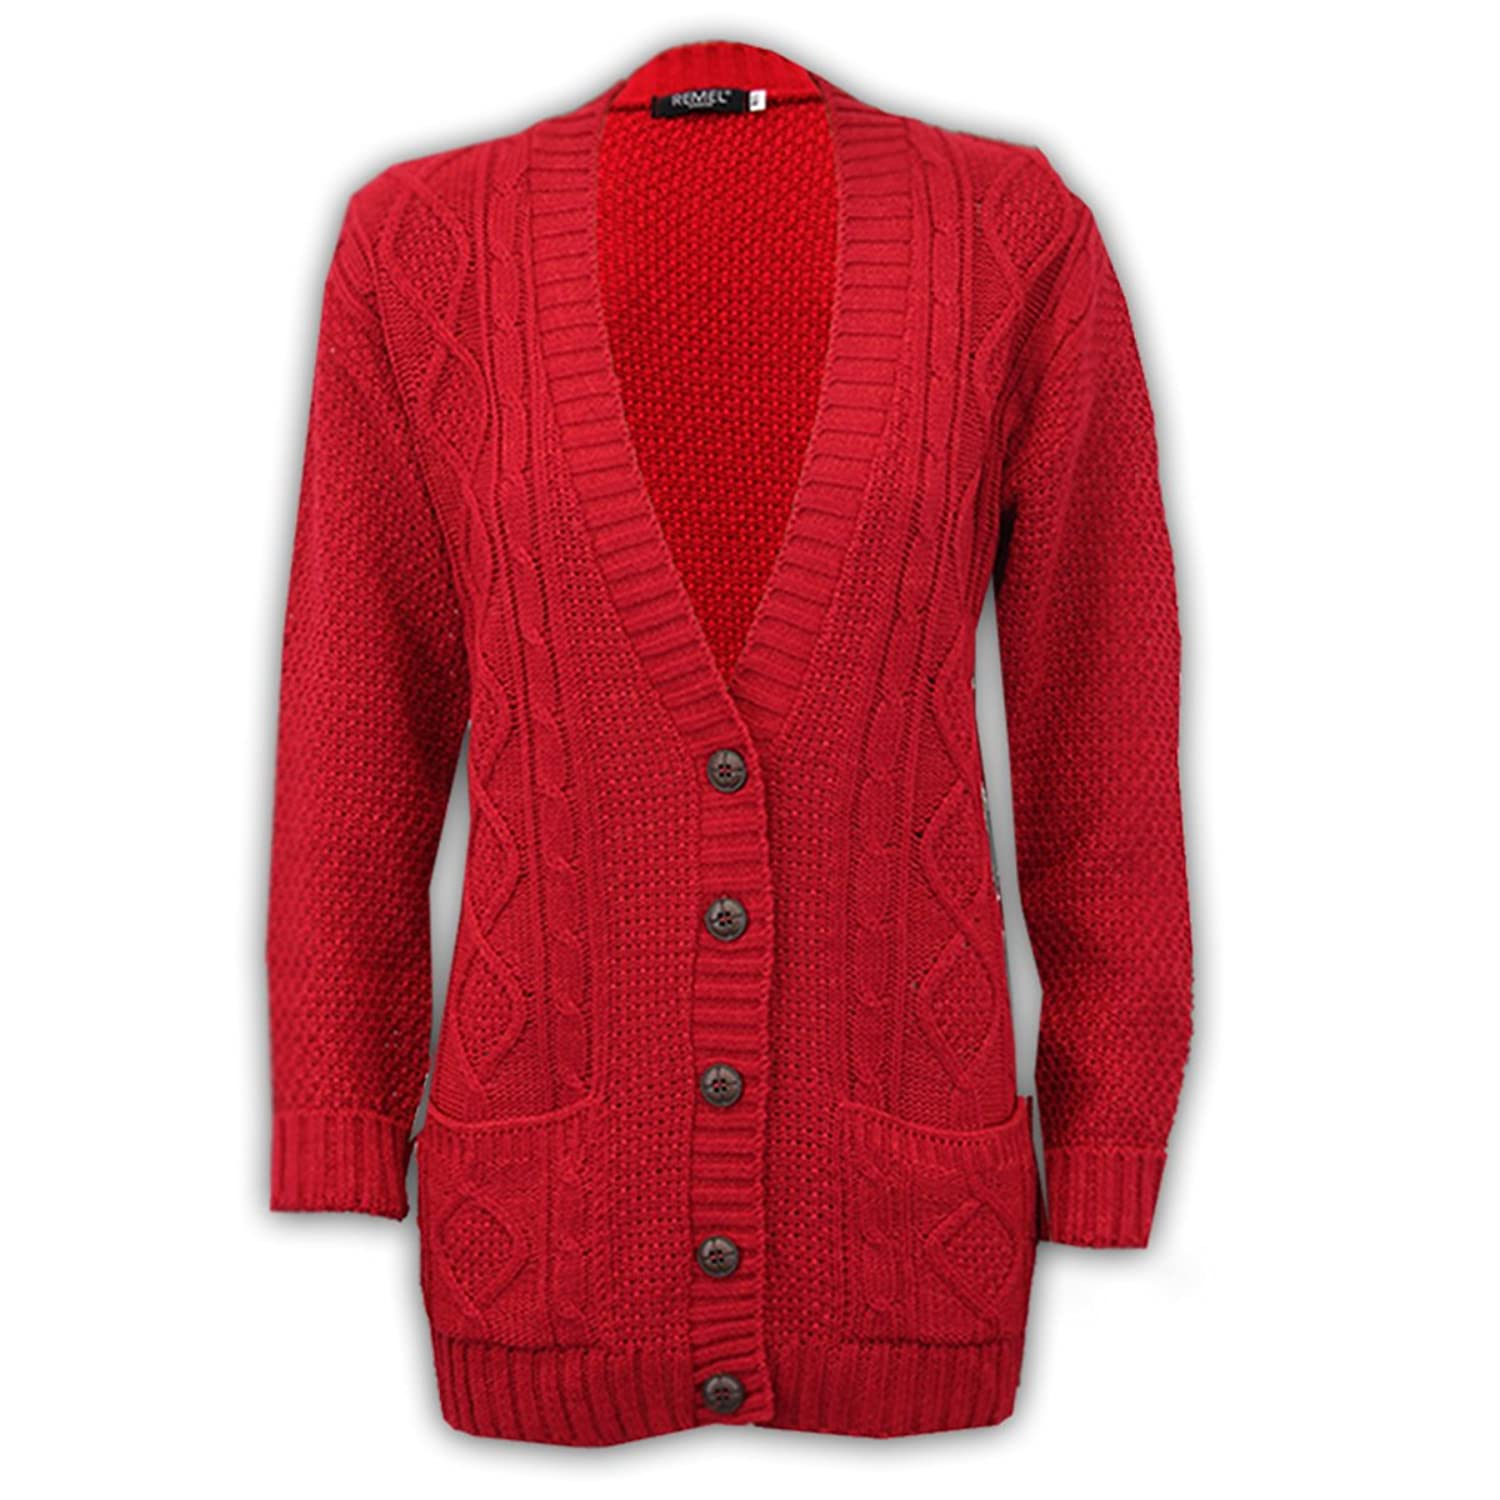 Ladies Cardigans Womens Knitted Jumper Cable Jacquared Boyfriend ...